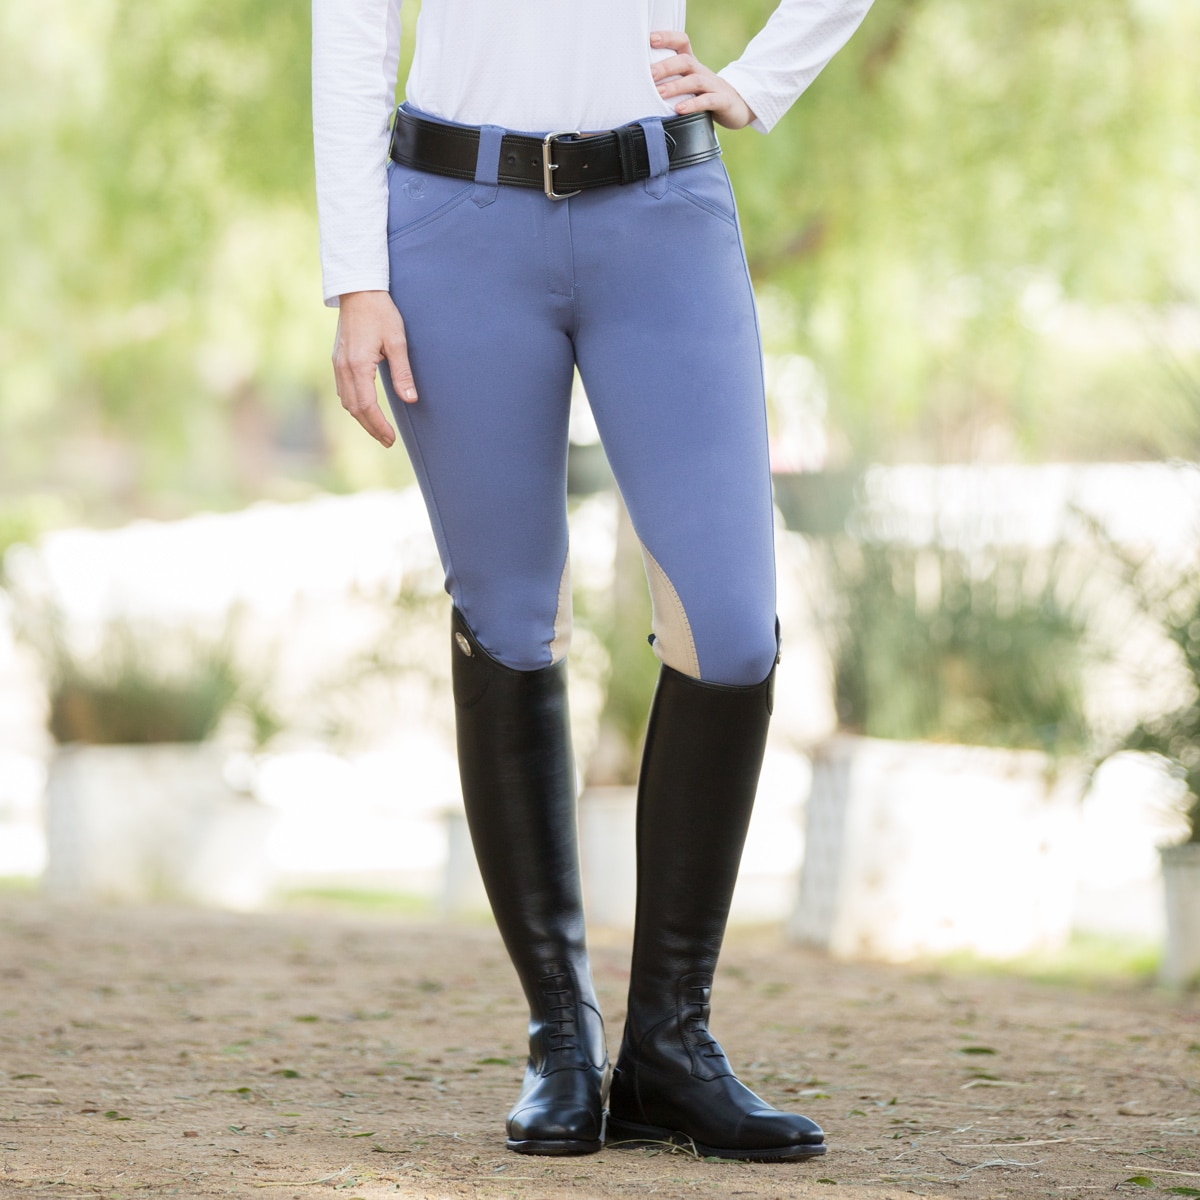 Piper Breeches by SmartPak - Tan Knee Patch